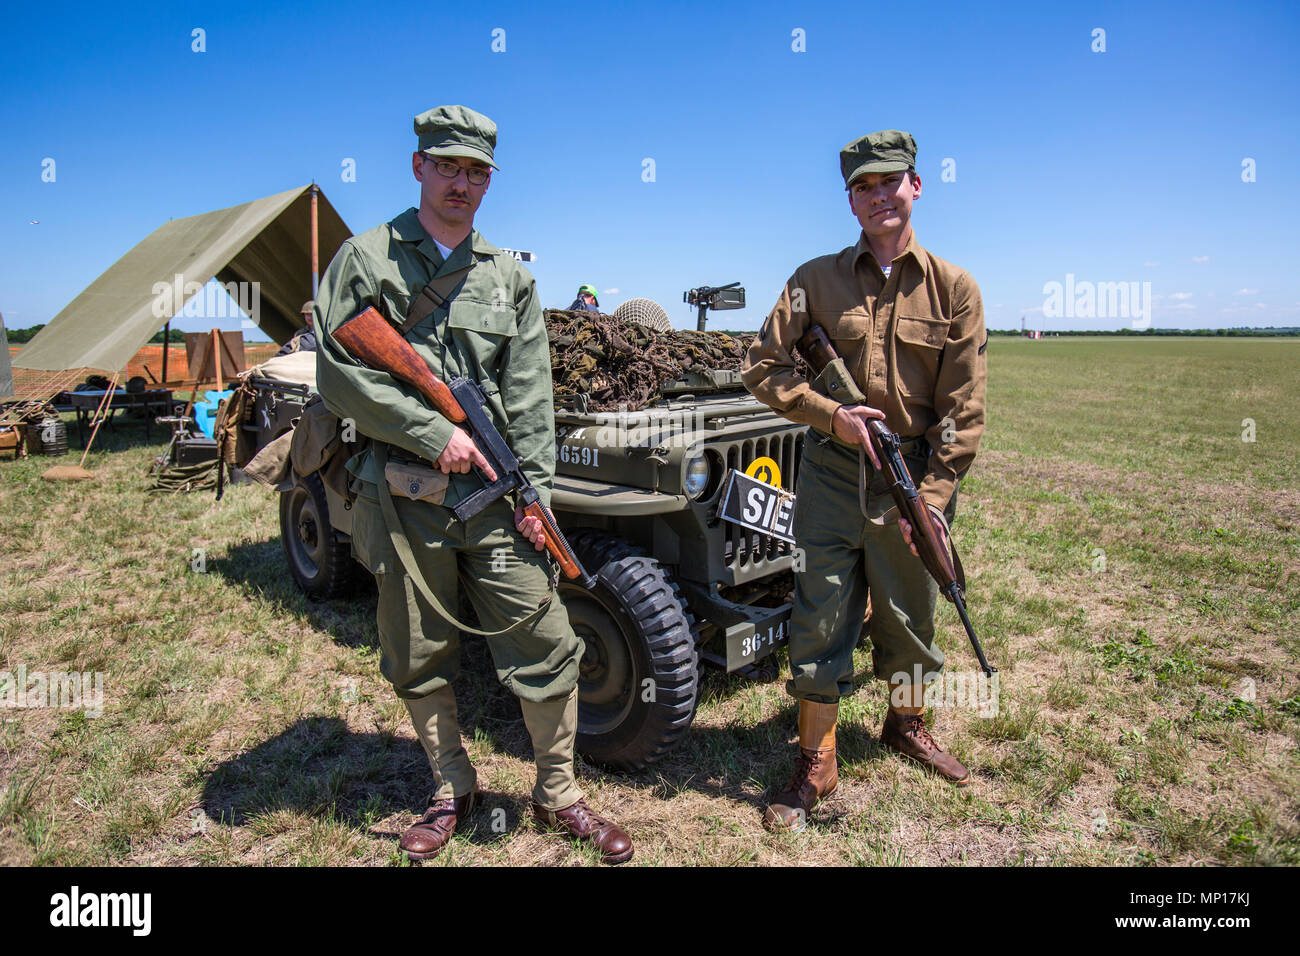 Army servicemen at Central Texas Airshow - Stock Image